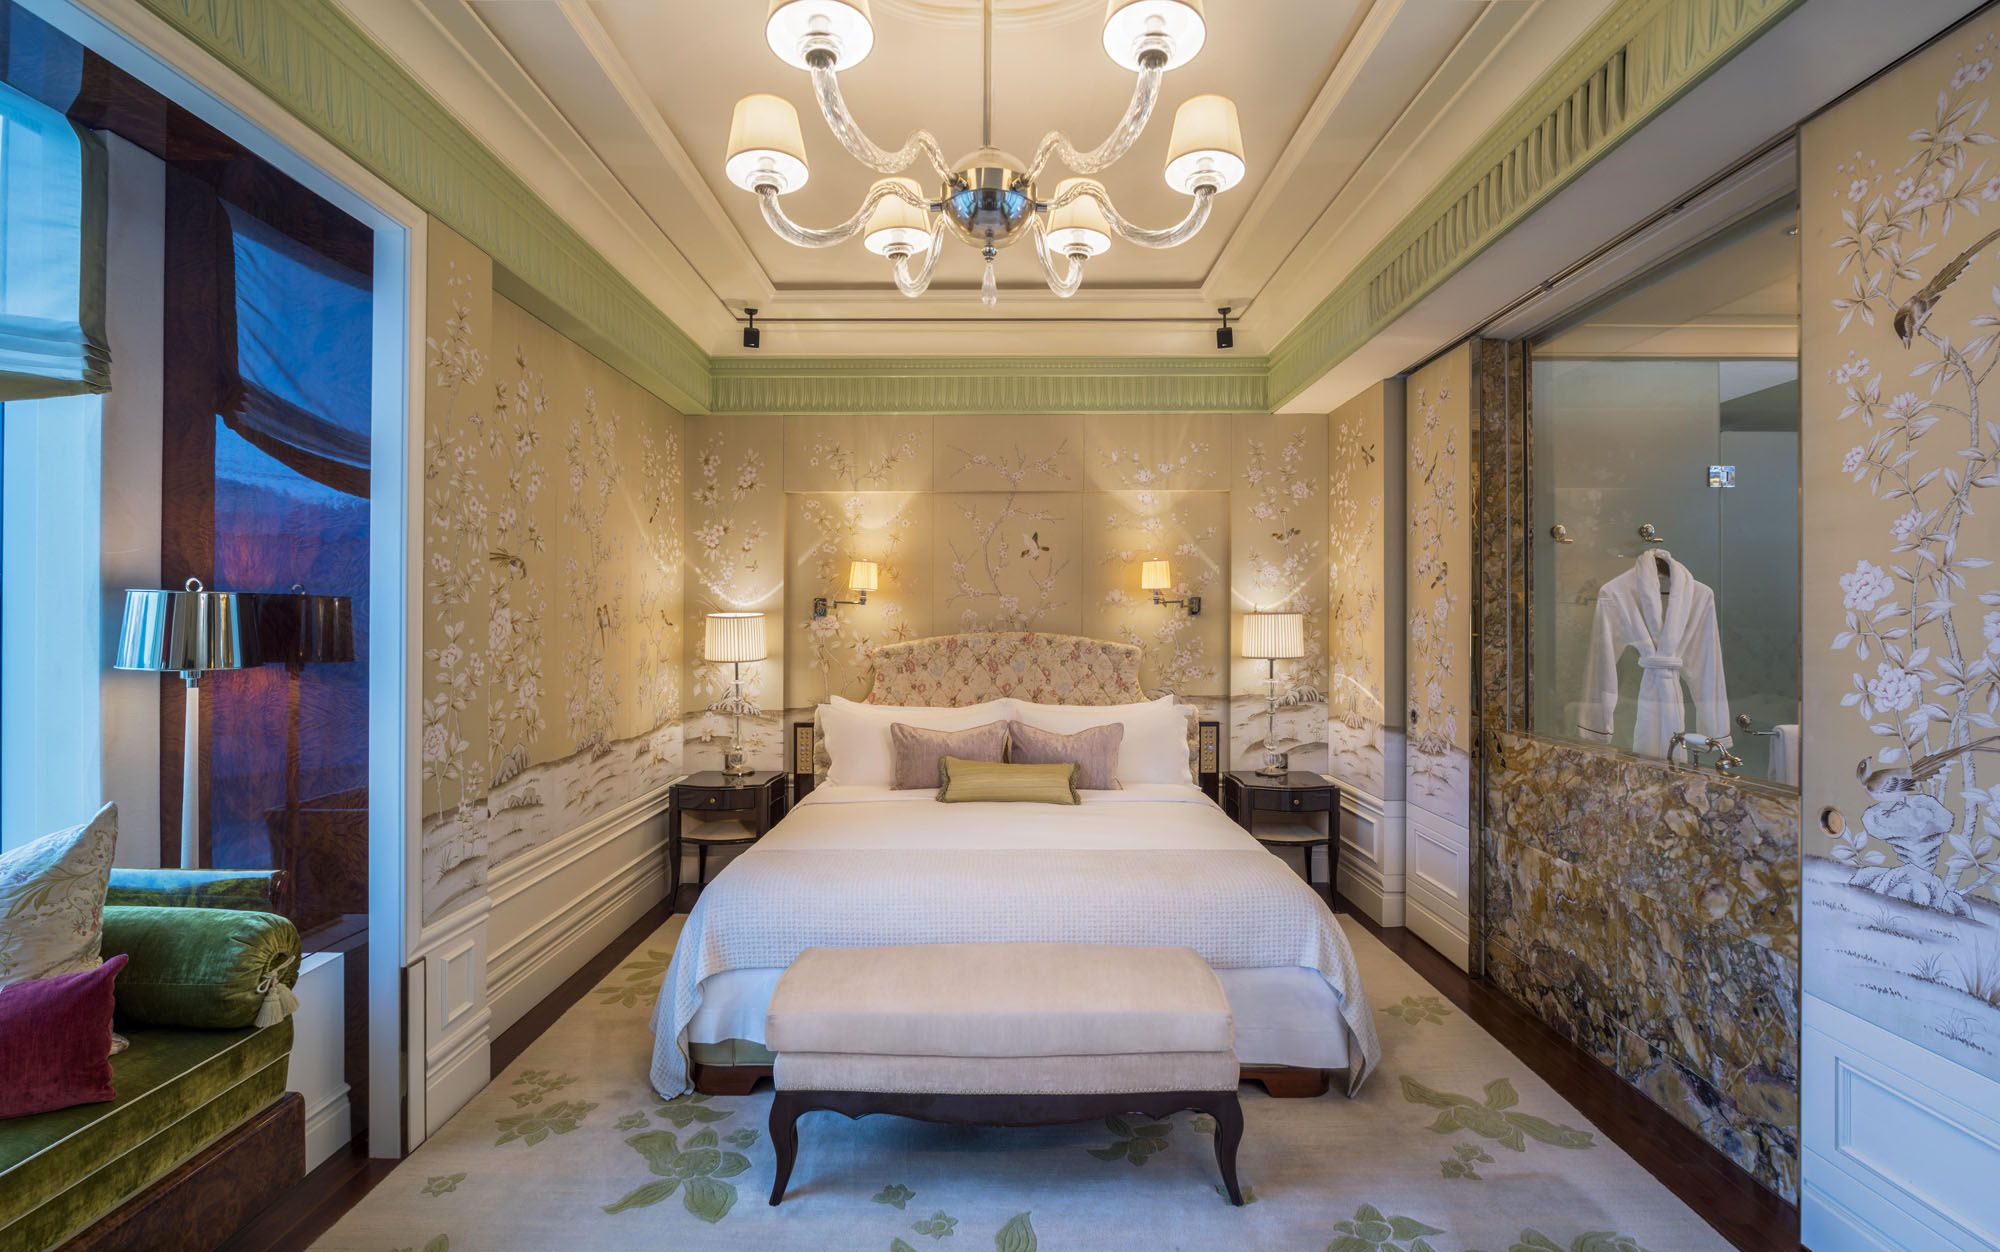 Hotel Staycation Review: Tatler Checks Into… St. Regis Singapore